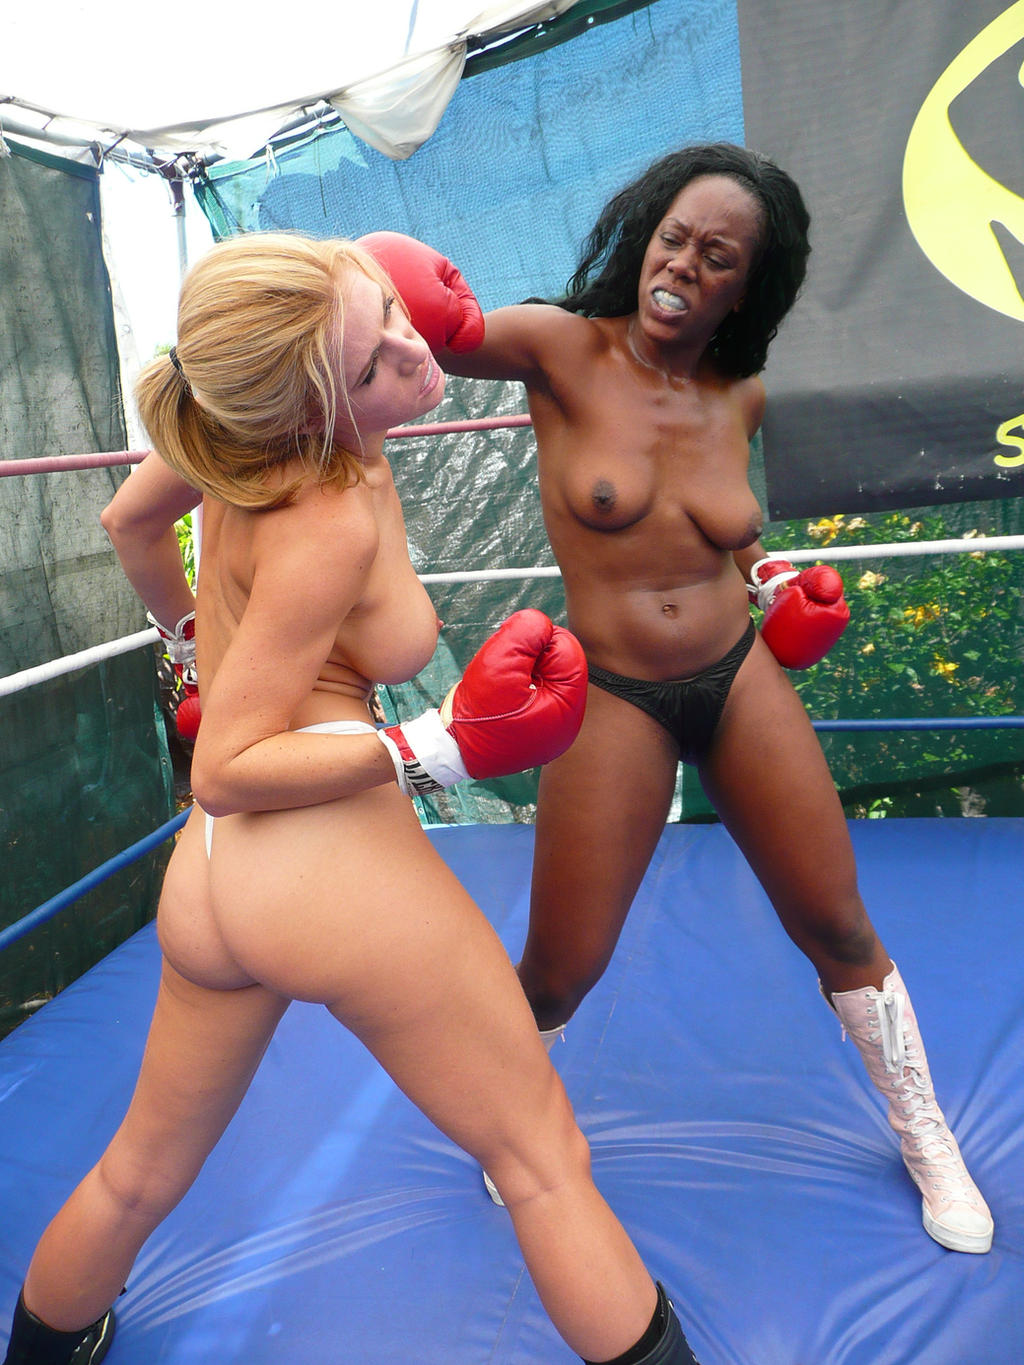 nude gay vs women boxing